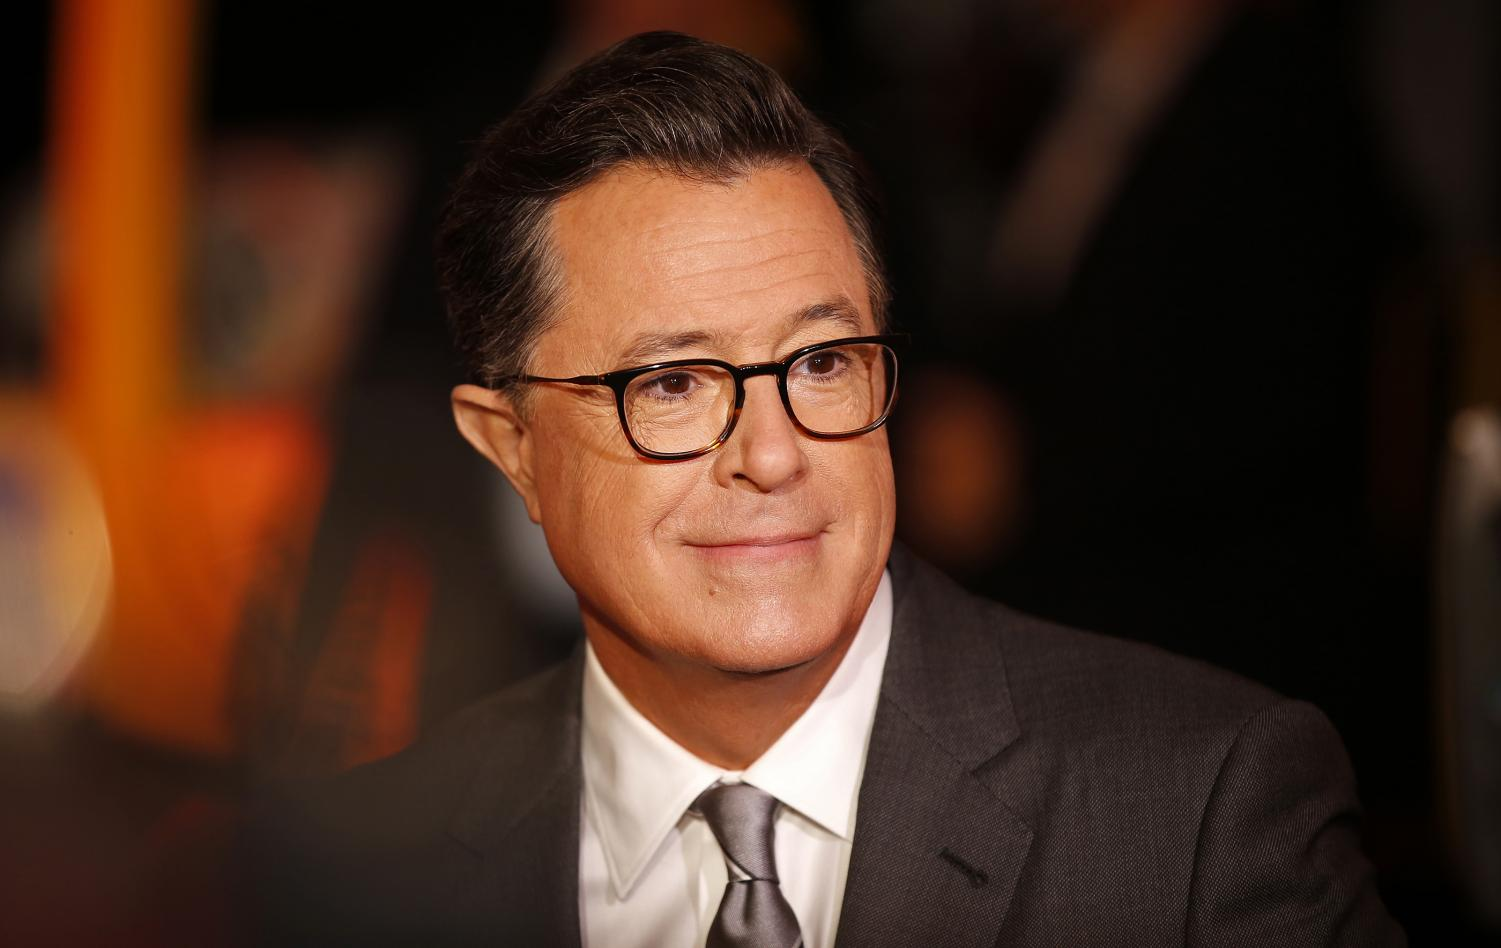 Stephen Colbert (Communication '86) at the Emmy Awards in 2017. Colbert was among eight Northwestern alumni who received Emmy nominations this year.